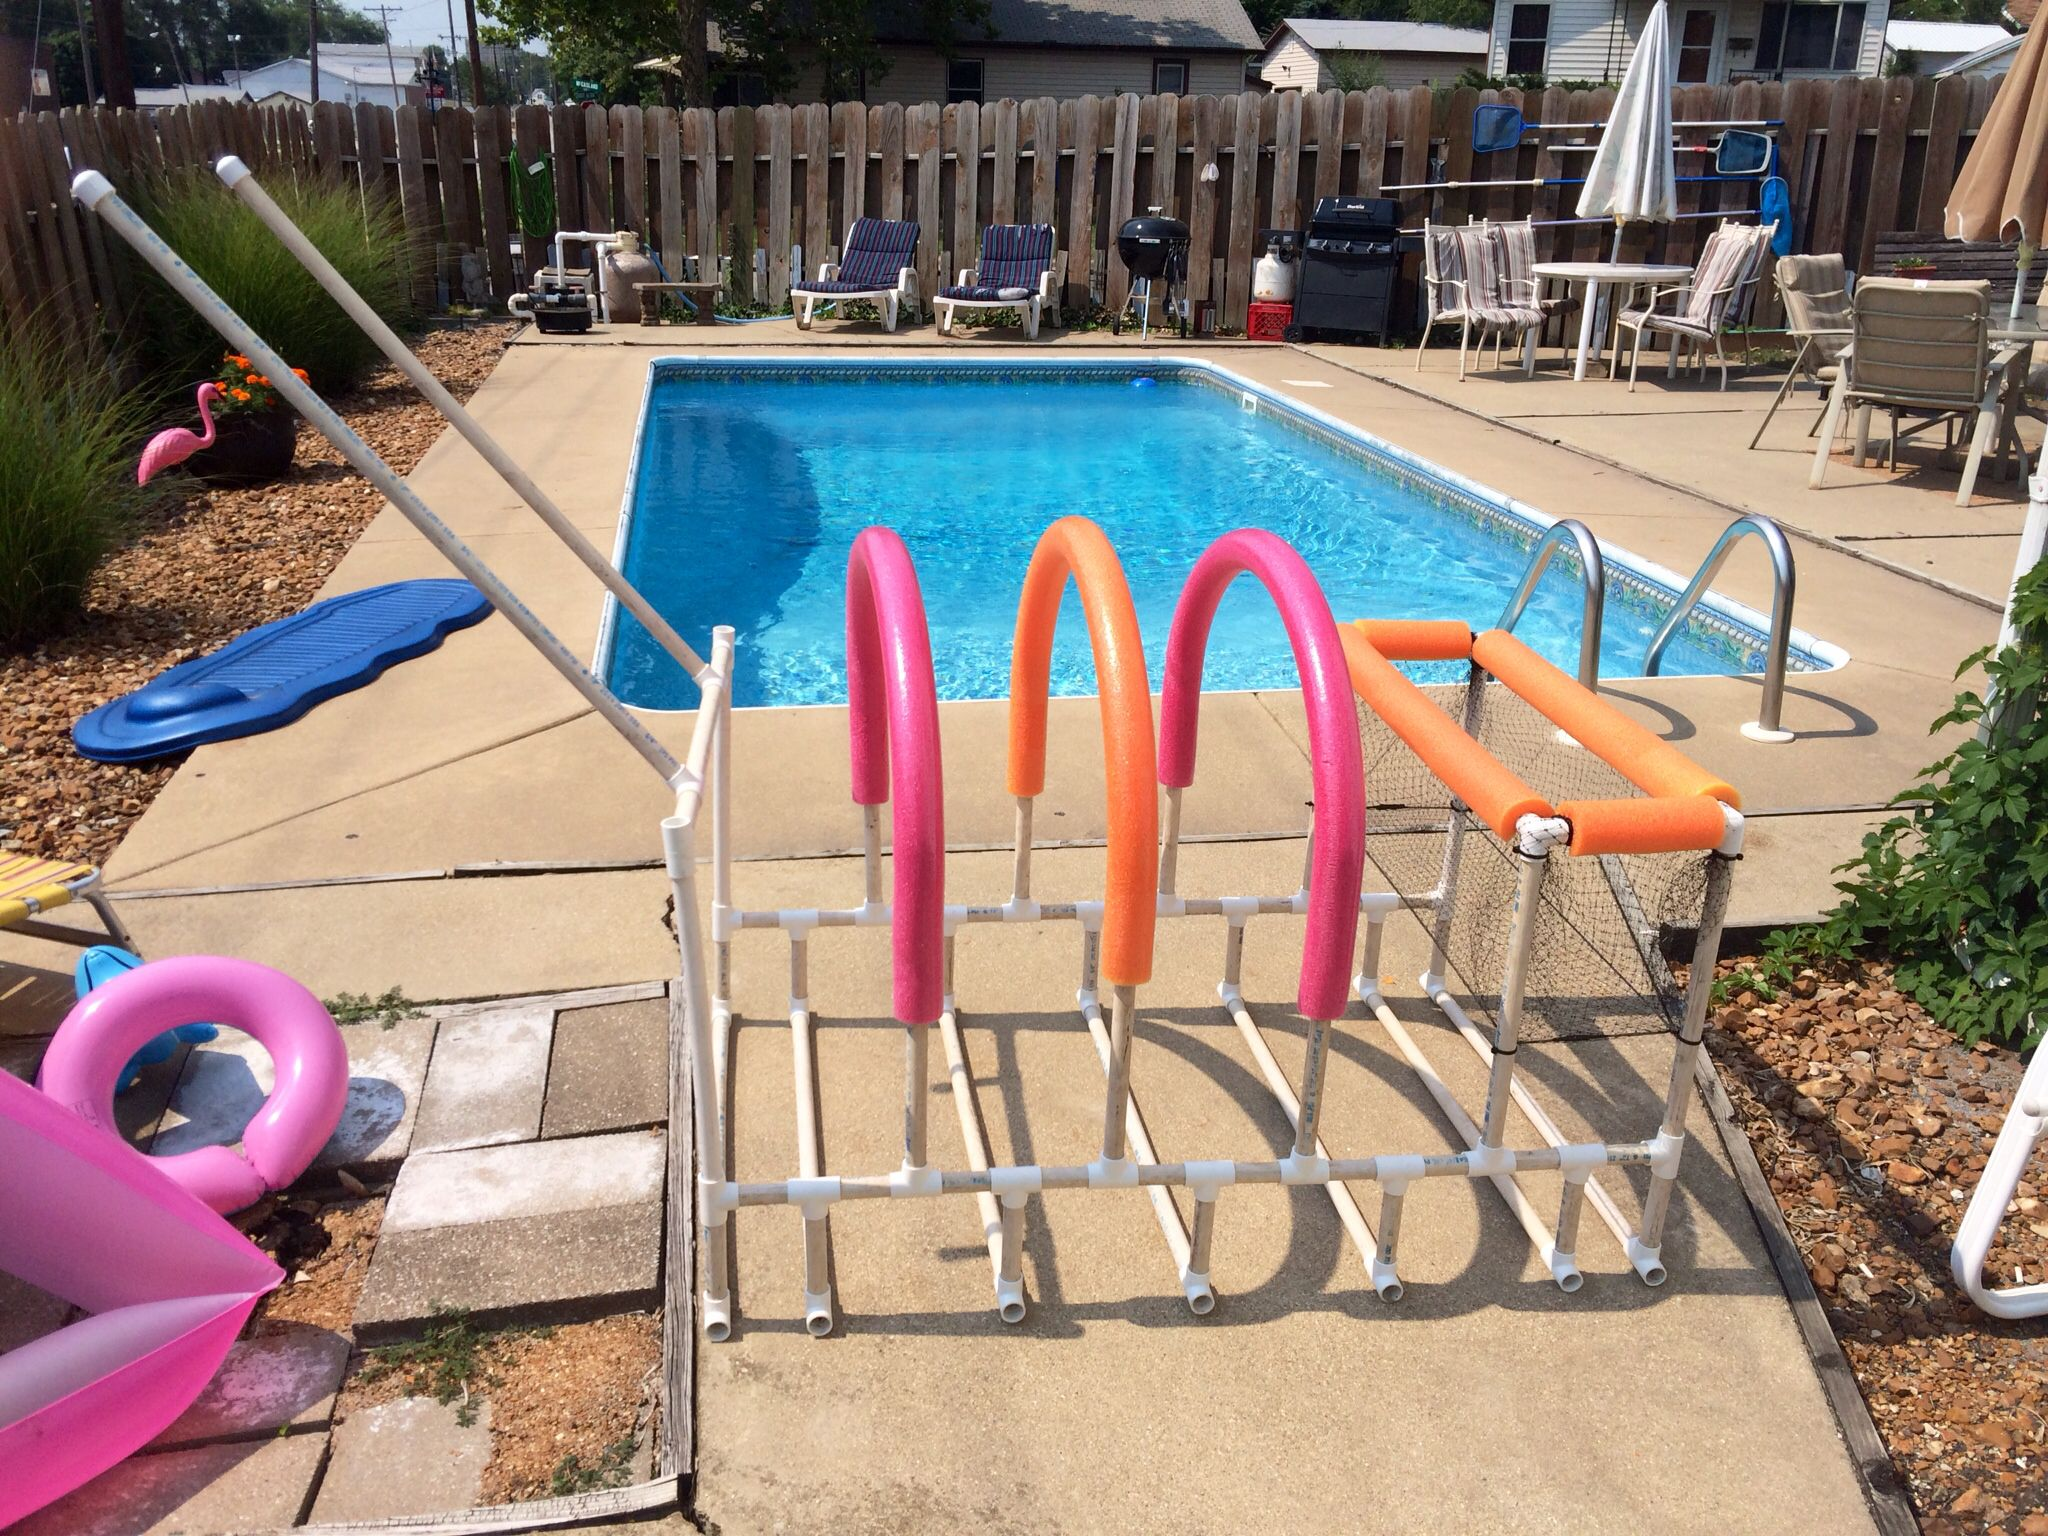 Nailed It Poolside Storage For Rafts Toys Goggles Tubes And Noodles Total Cost Was Less Than 40 Could Probably Pvc Pool Pool Float Storage Pool Towels